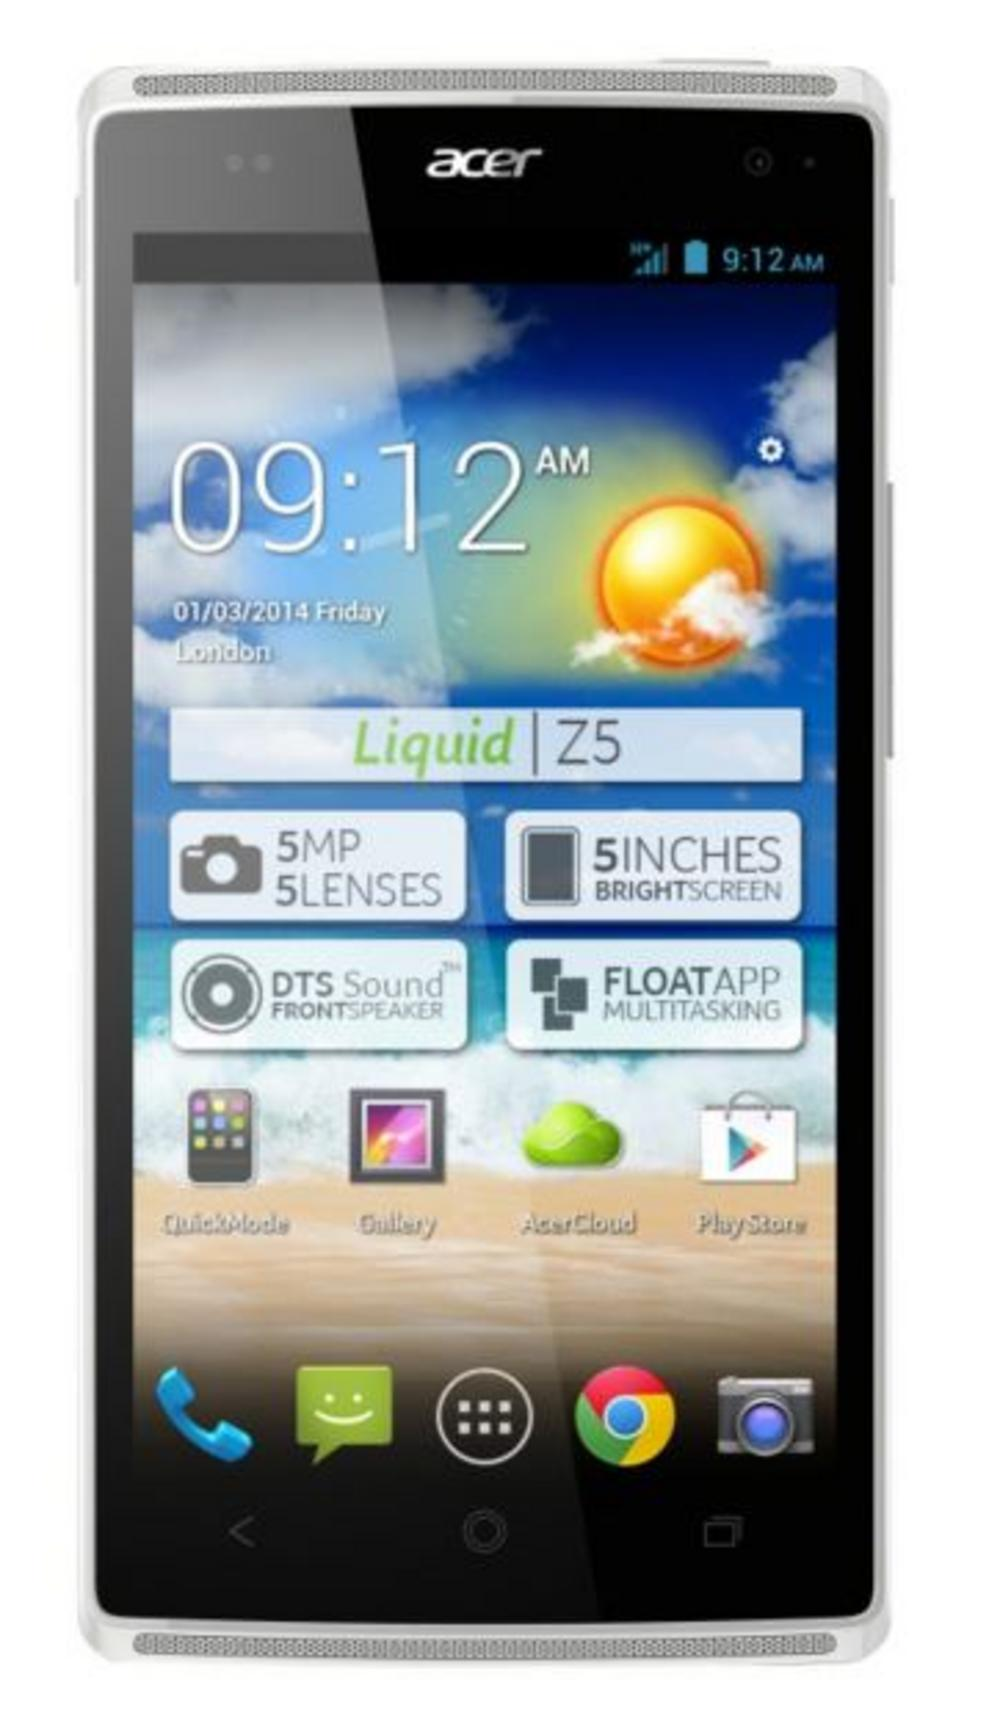 Acer Liquid Z5 Android Mobile Phone Touchscreen Smartphone Unlocked